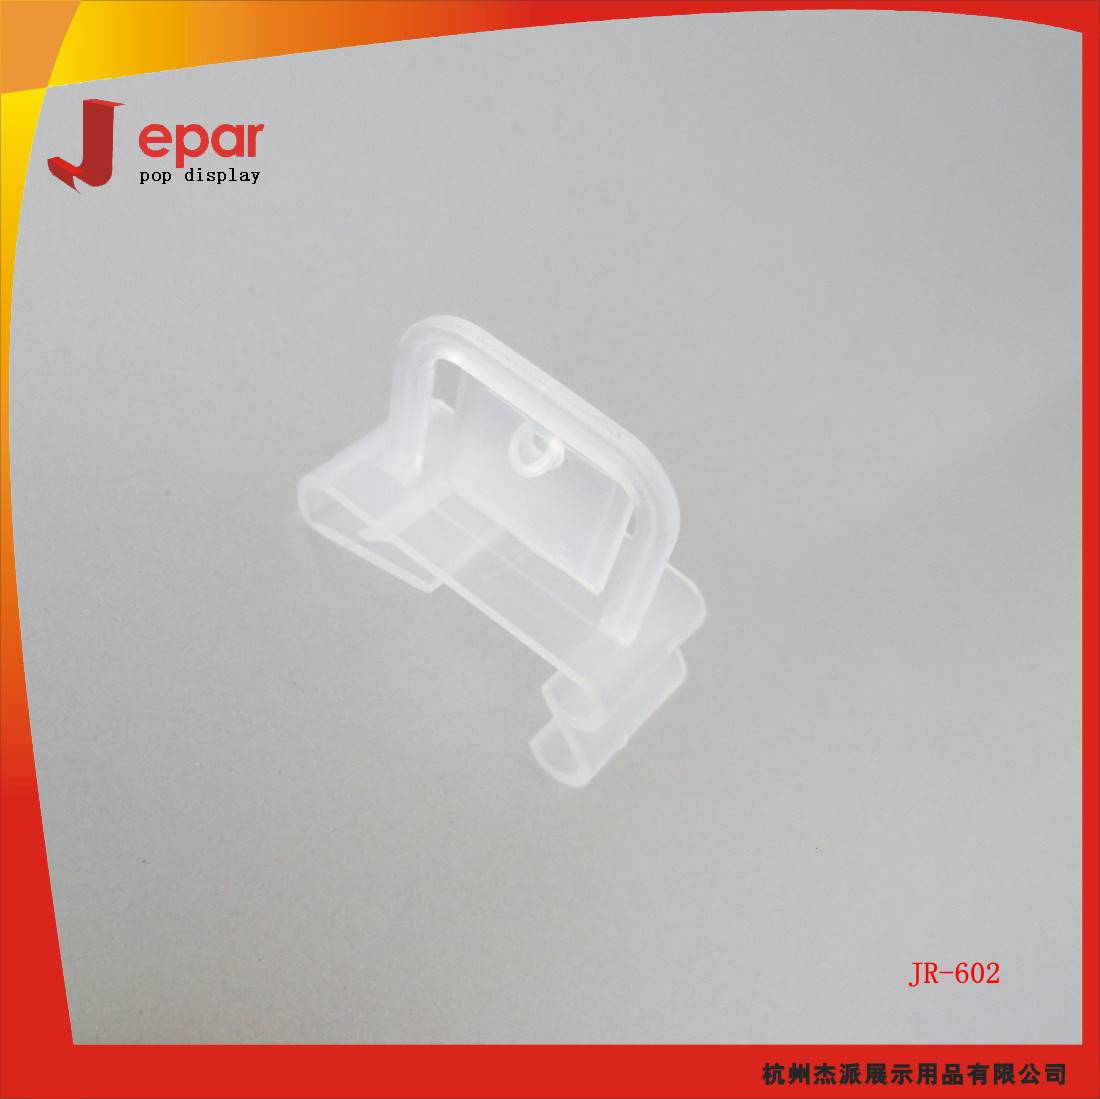 Supermarket clear plastic pop plastic shelf tag holder